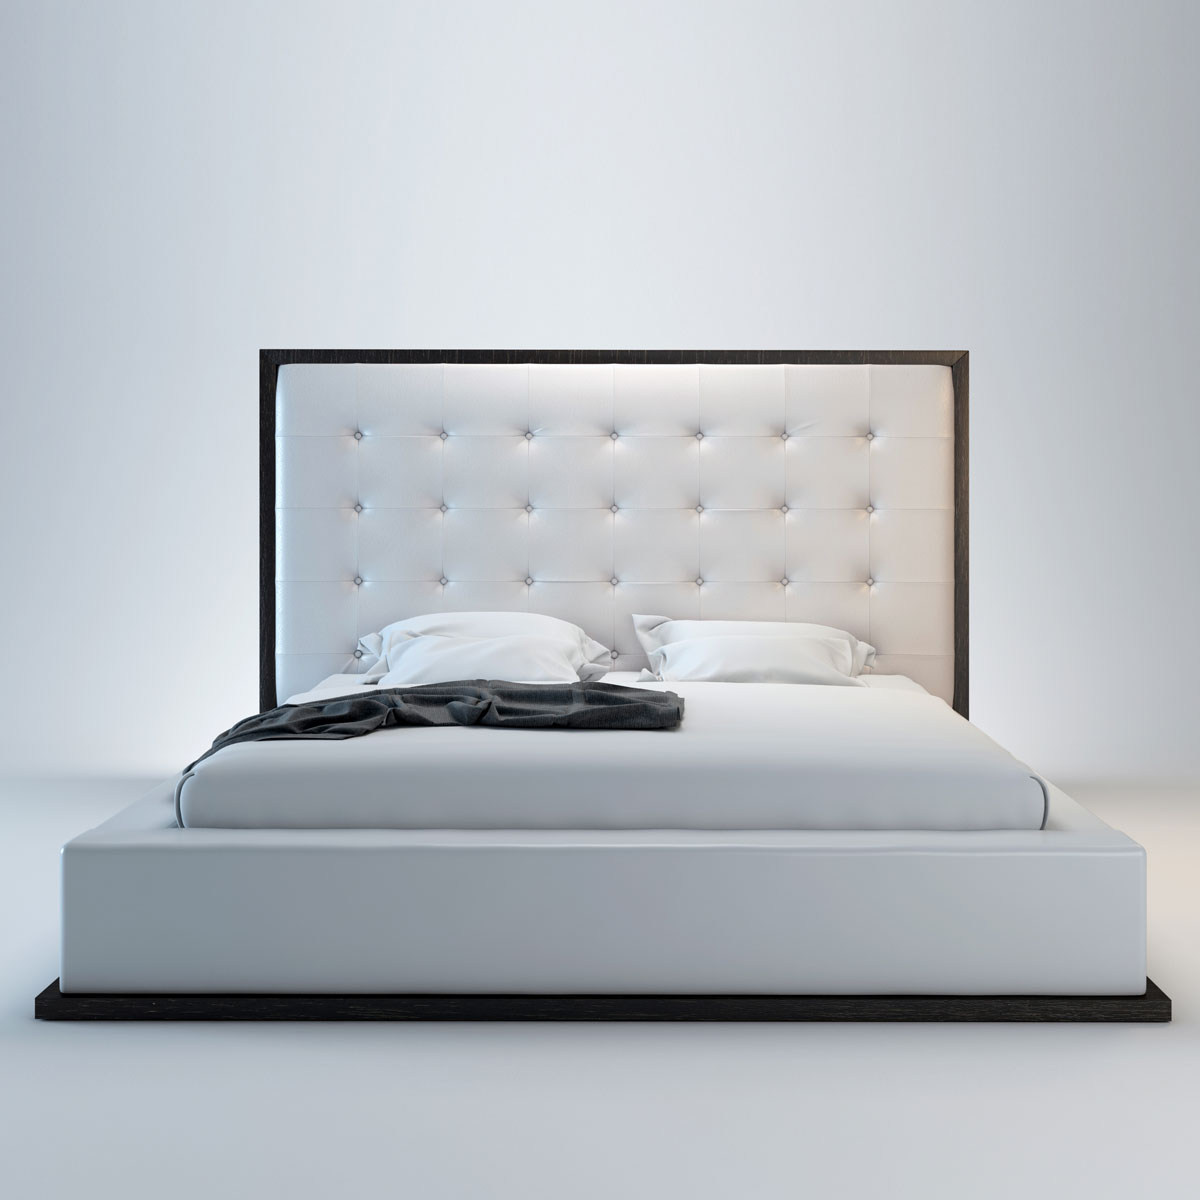 Modloft Ludlow Platform Bed in Wenge and White - (Queen)